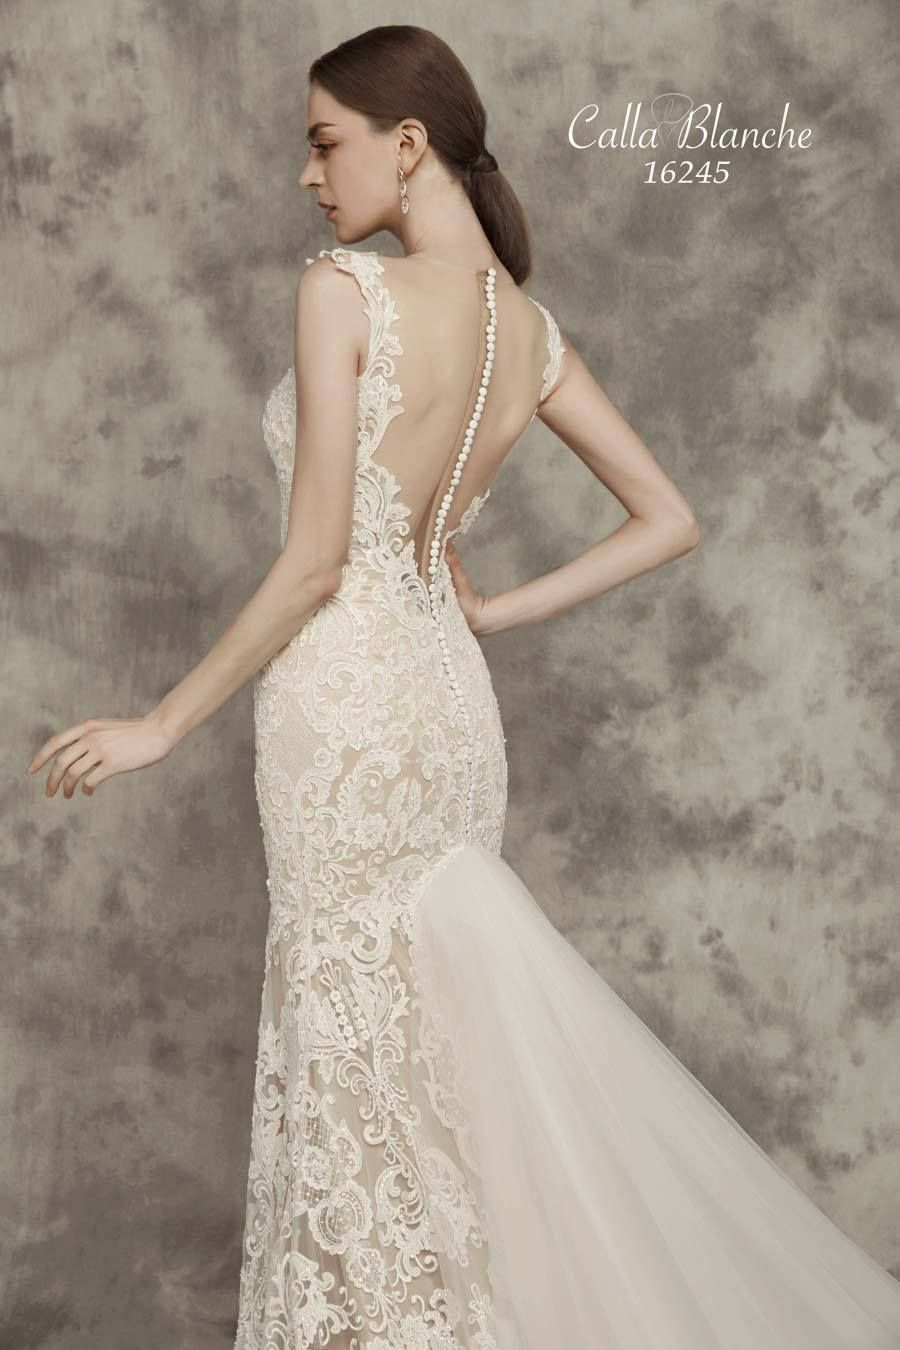 Chloe Wedding Dress Style 16245 Calla Blanche Bridal The Perfect Boutique Sarasota Fl